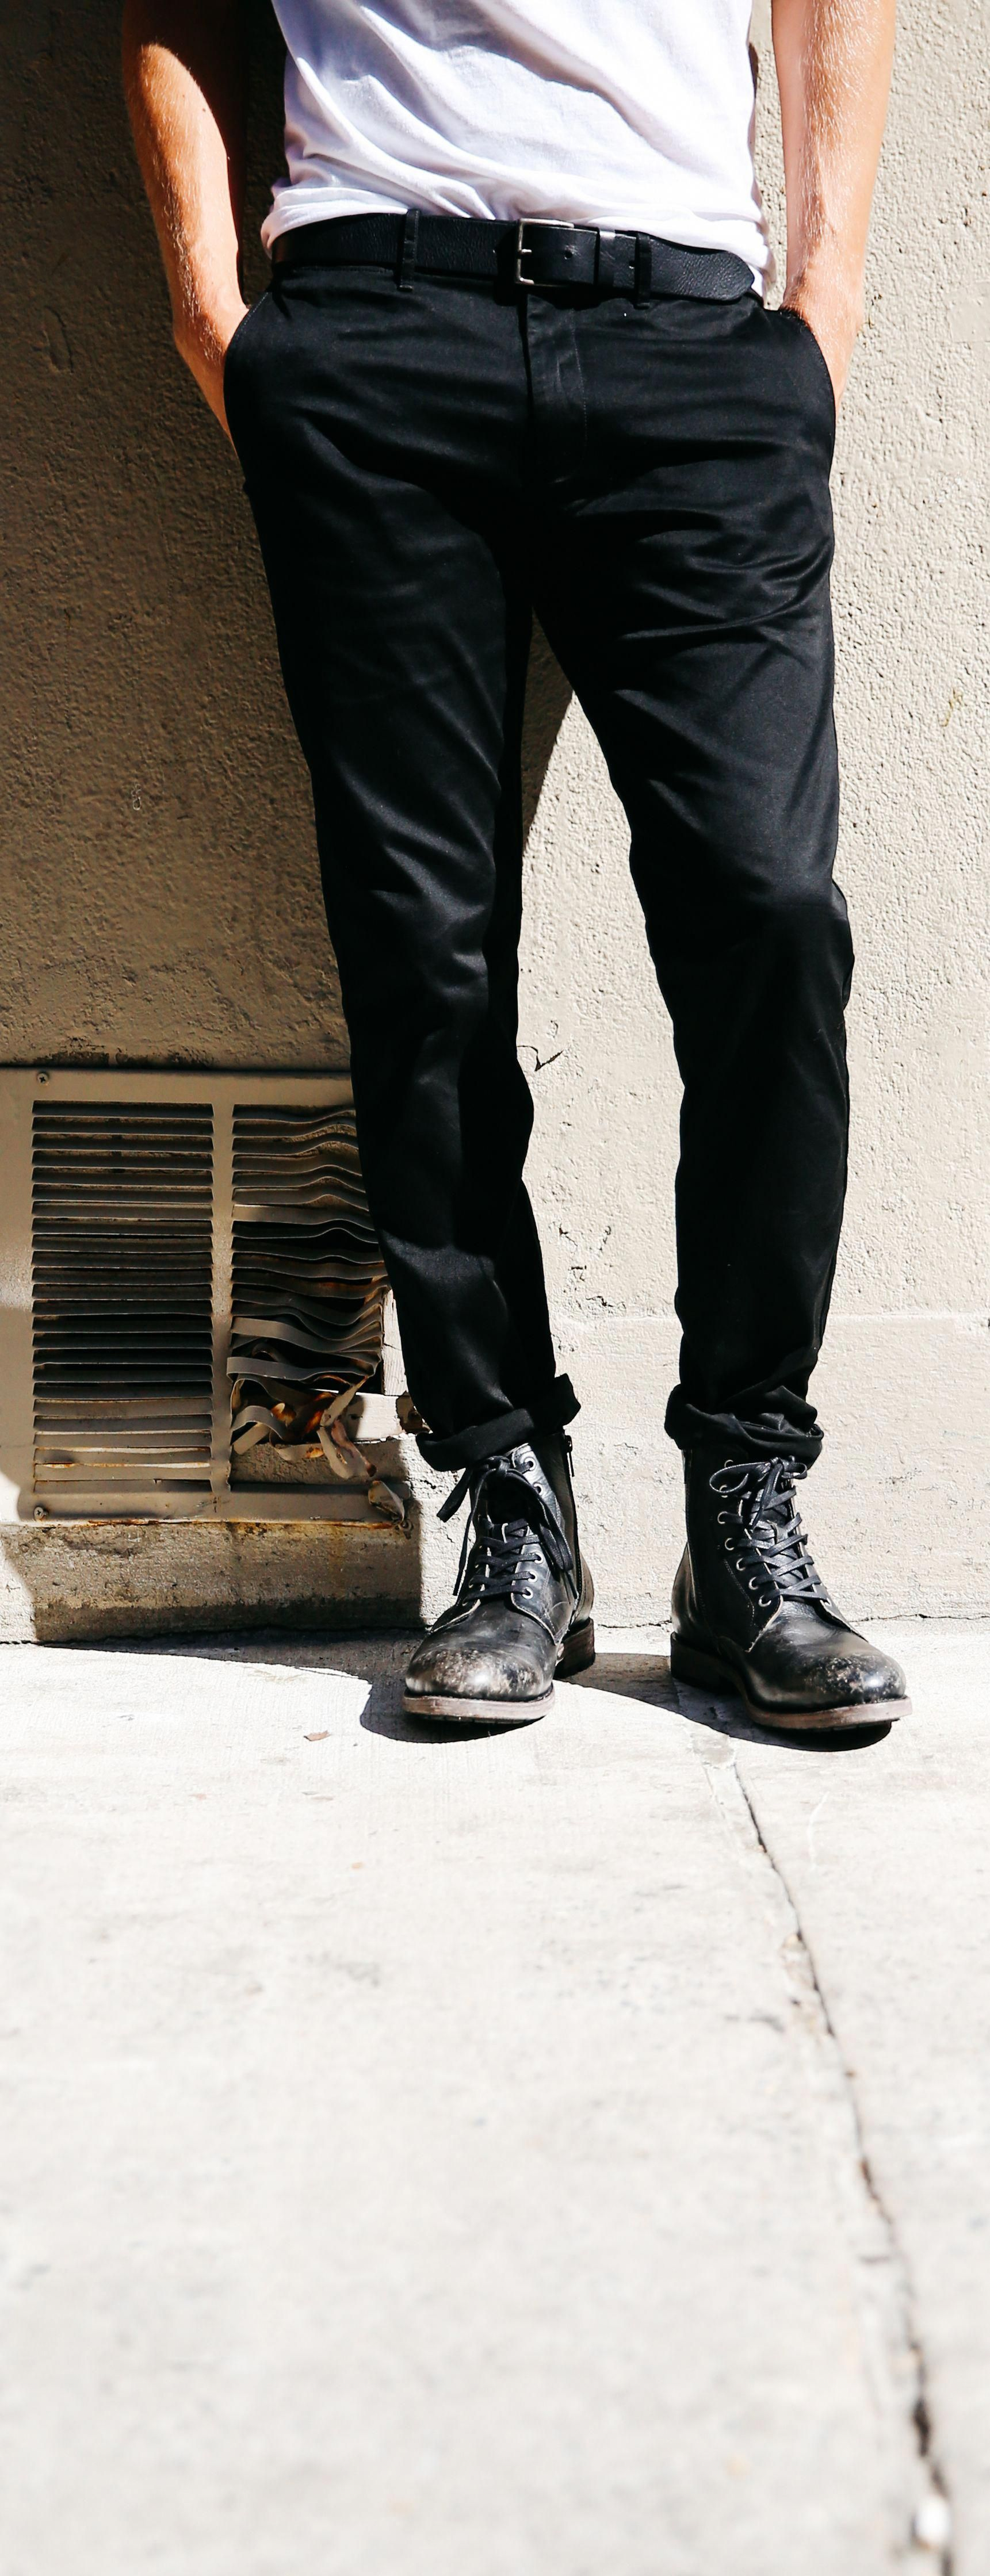 Bowery Lace Up Boots | The Frye Company #mensfashiontrends ...